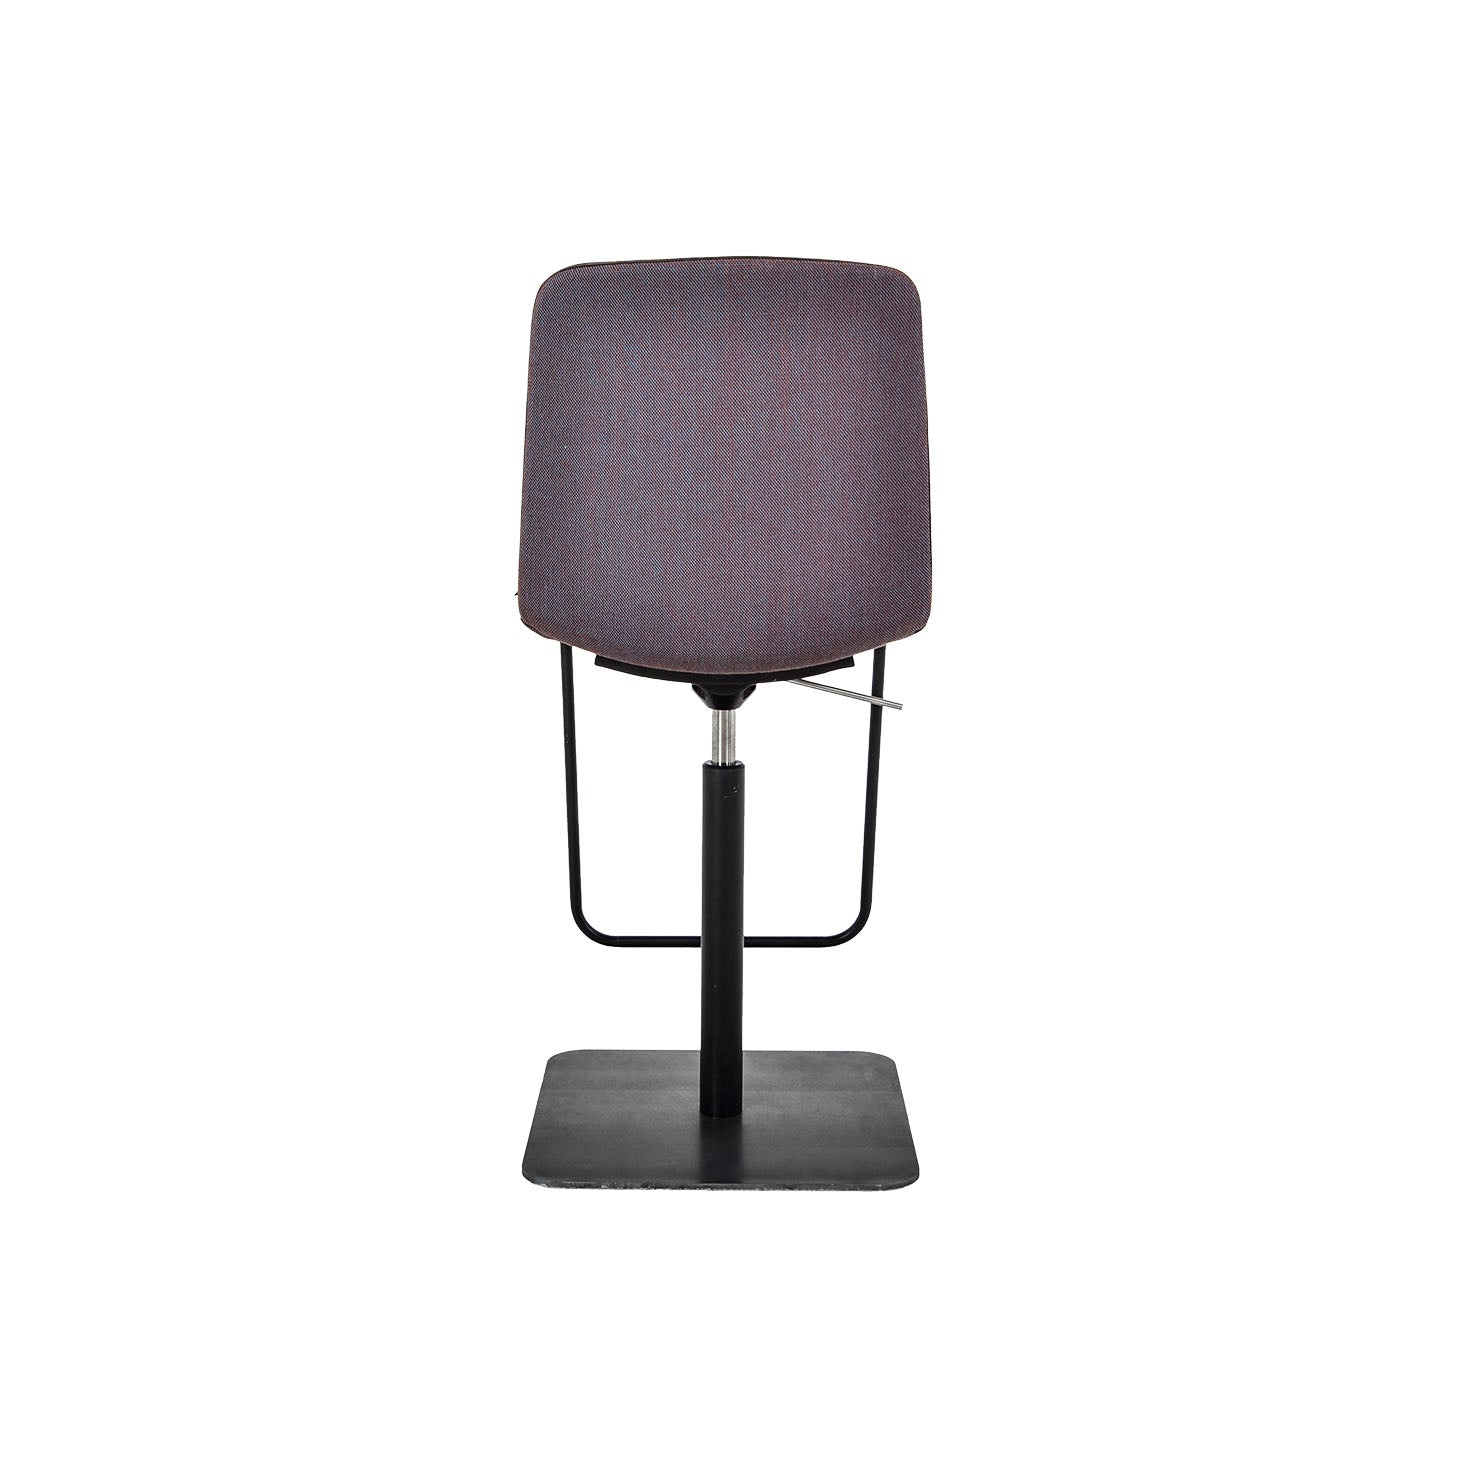 Remarkable Lhasa Bar Stool M2L Furniture Pabps2019 Chair Design Images Pabps2019Com